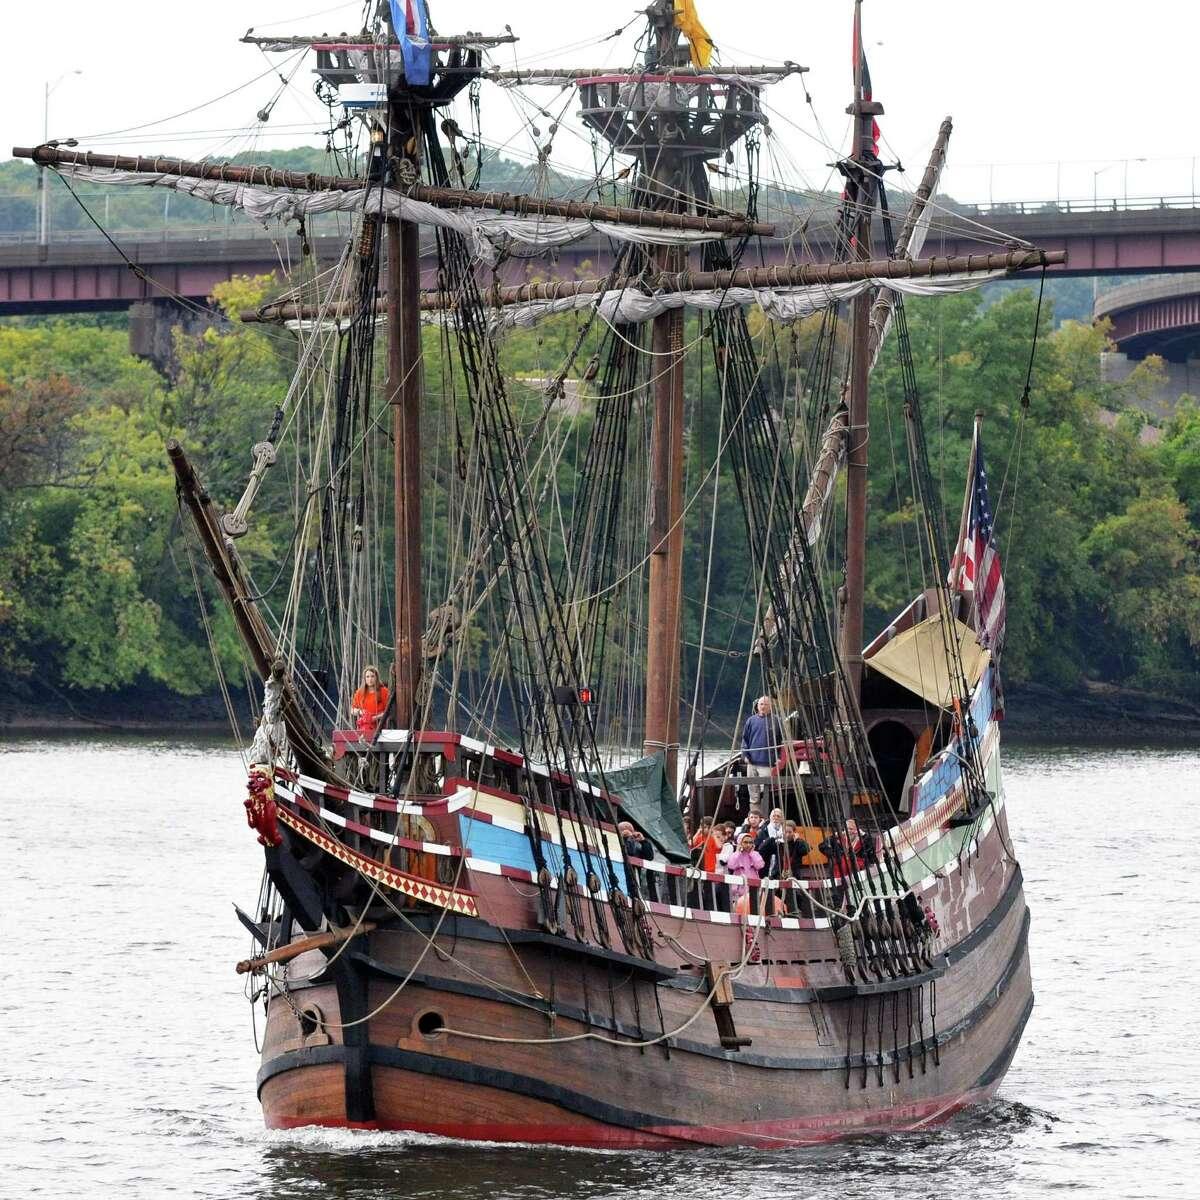 The replica 17th century sailing ship Half Moon carrying a group of Dutch and American middle school students prepares to dock at Albany's Corning Preserve Tuesday Sept. 18, 2012, as they re-create the original voyage of Henry Hudson from September 1609. (John Carl D'Annibale / Times Union)